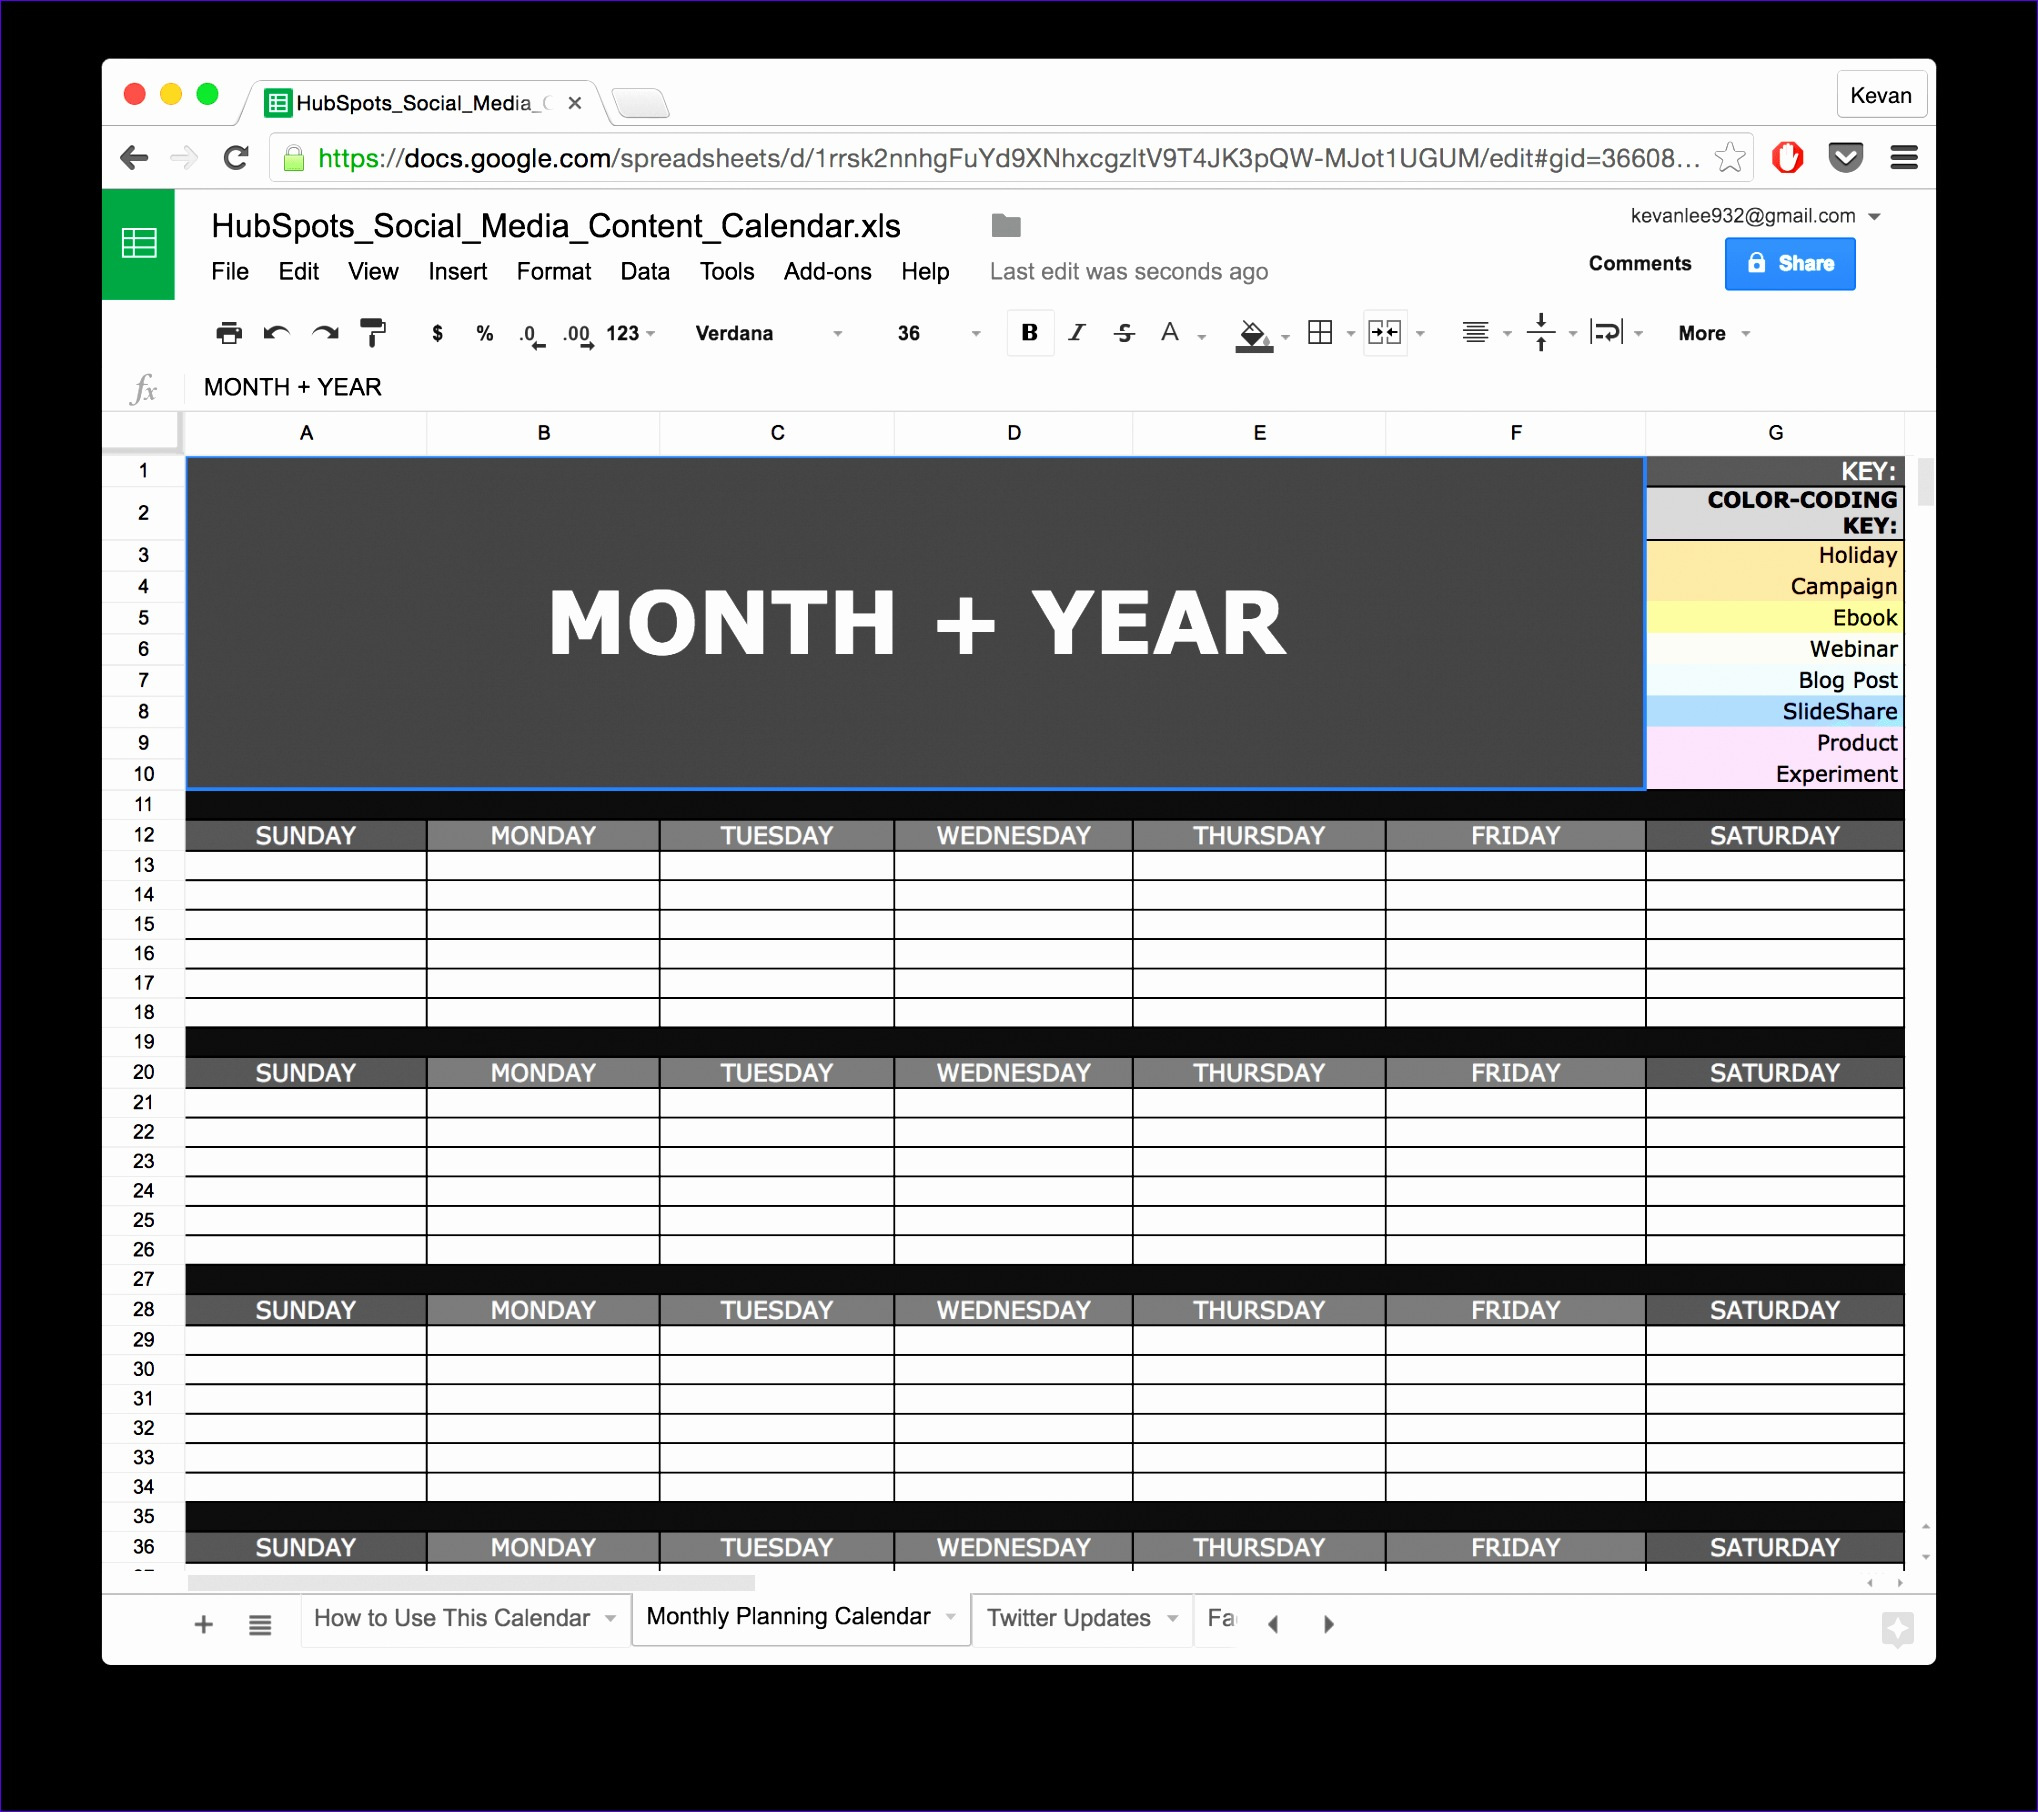 Social Media Calendar Template Excel Onkfz Best Of 10 Ready to Go Marketing Spreadsheets to Boost Your Productivity today